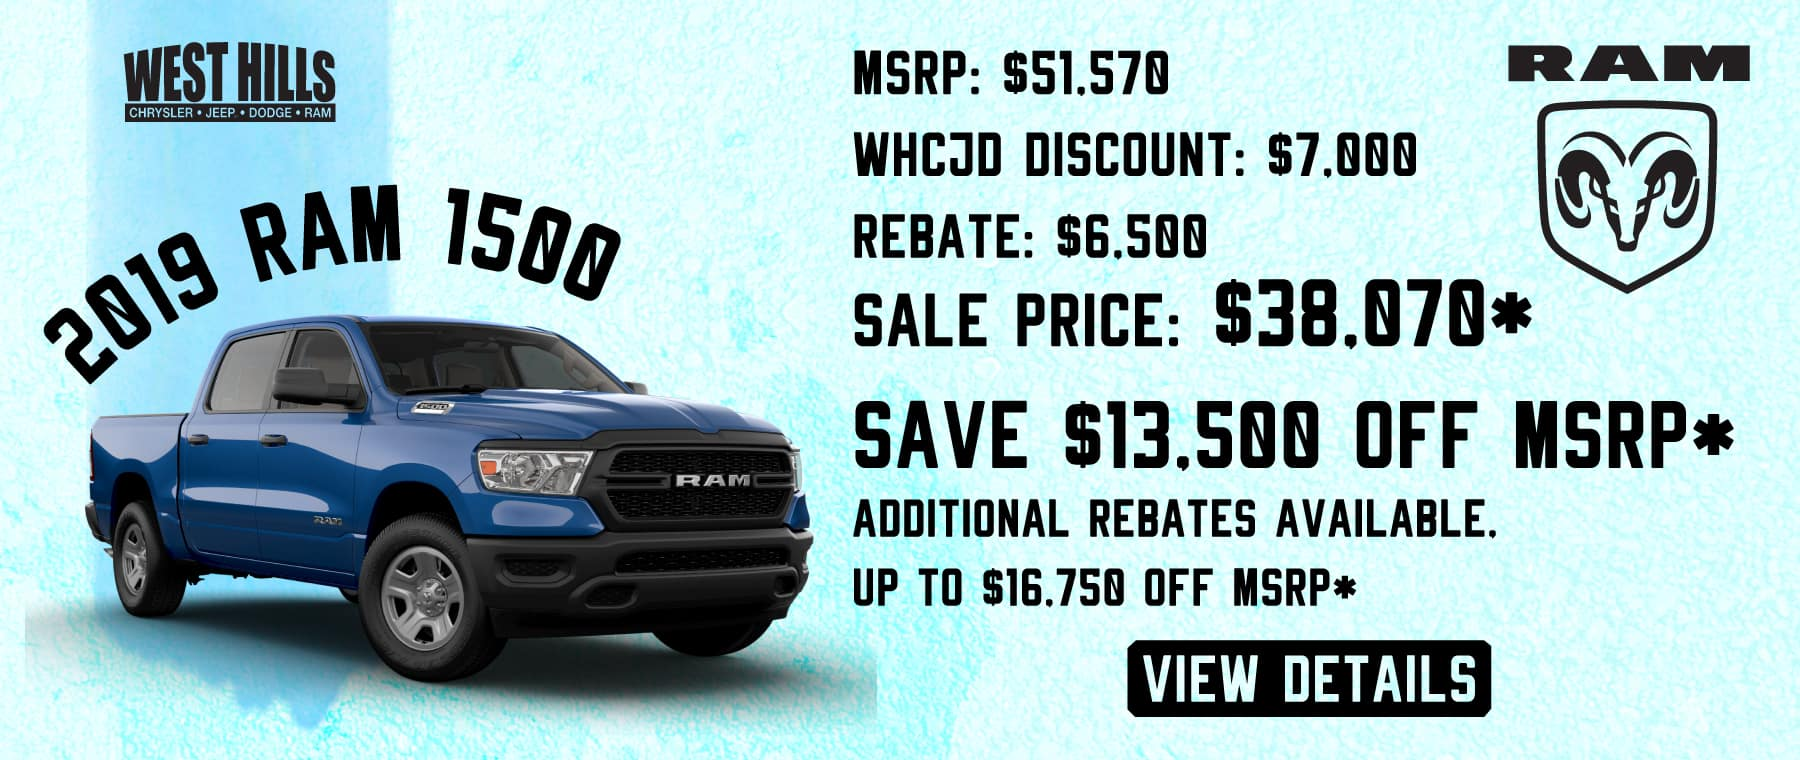 2019 Ram 1500   MSRP: $51,570 WHCJD Discount: $7,000 Rebate: $6,500 Sale Price: $38,070*  SAVE $13,500 OFF MSRP*   ADDITIONAL REBATES AVAILABLE, UP TO $16,750 OFF MSRP*